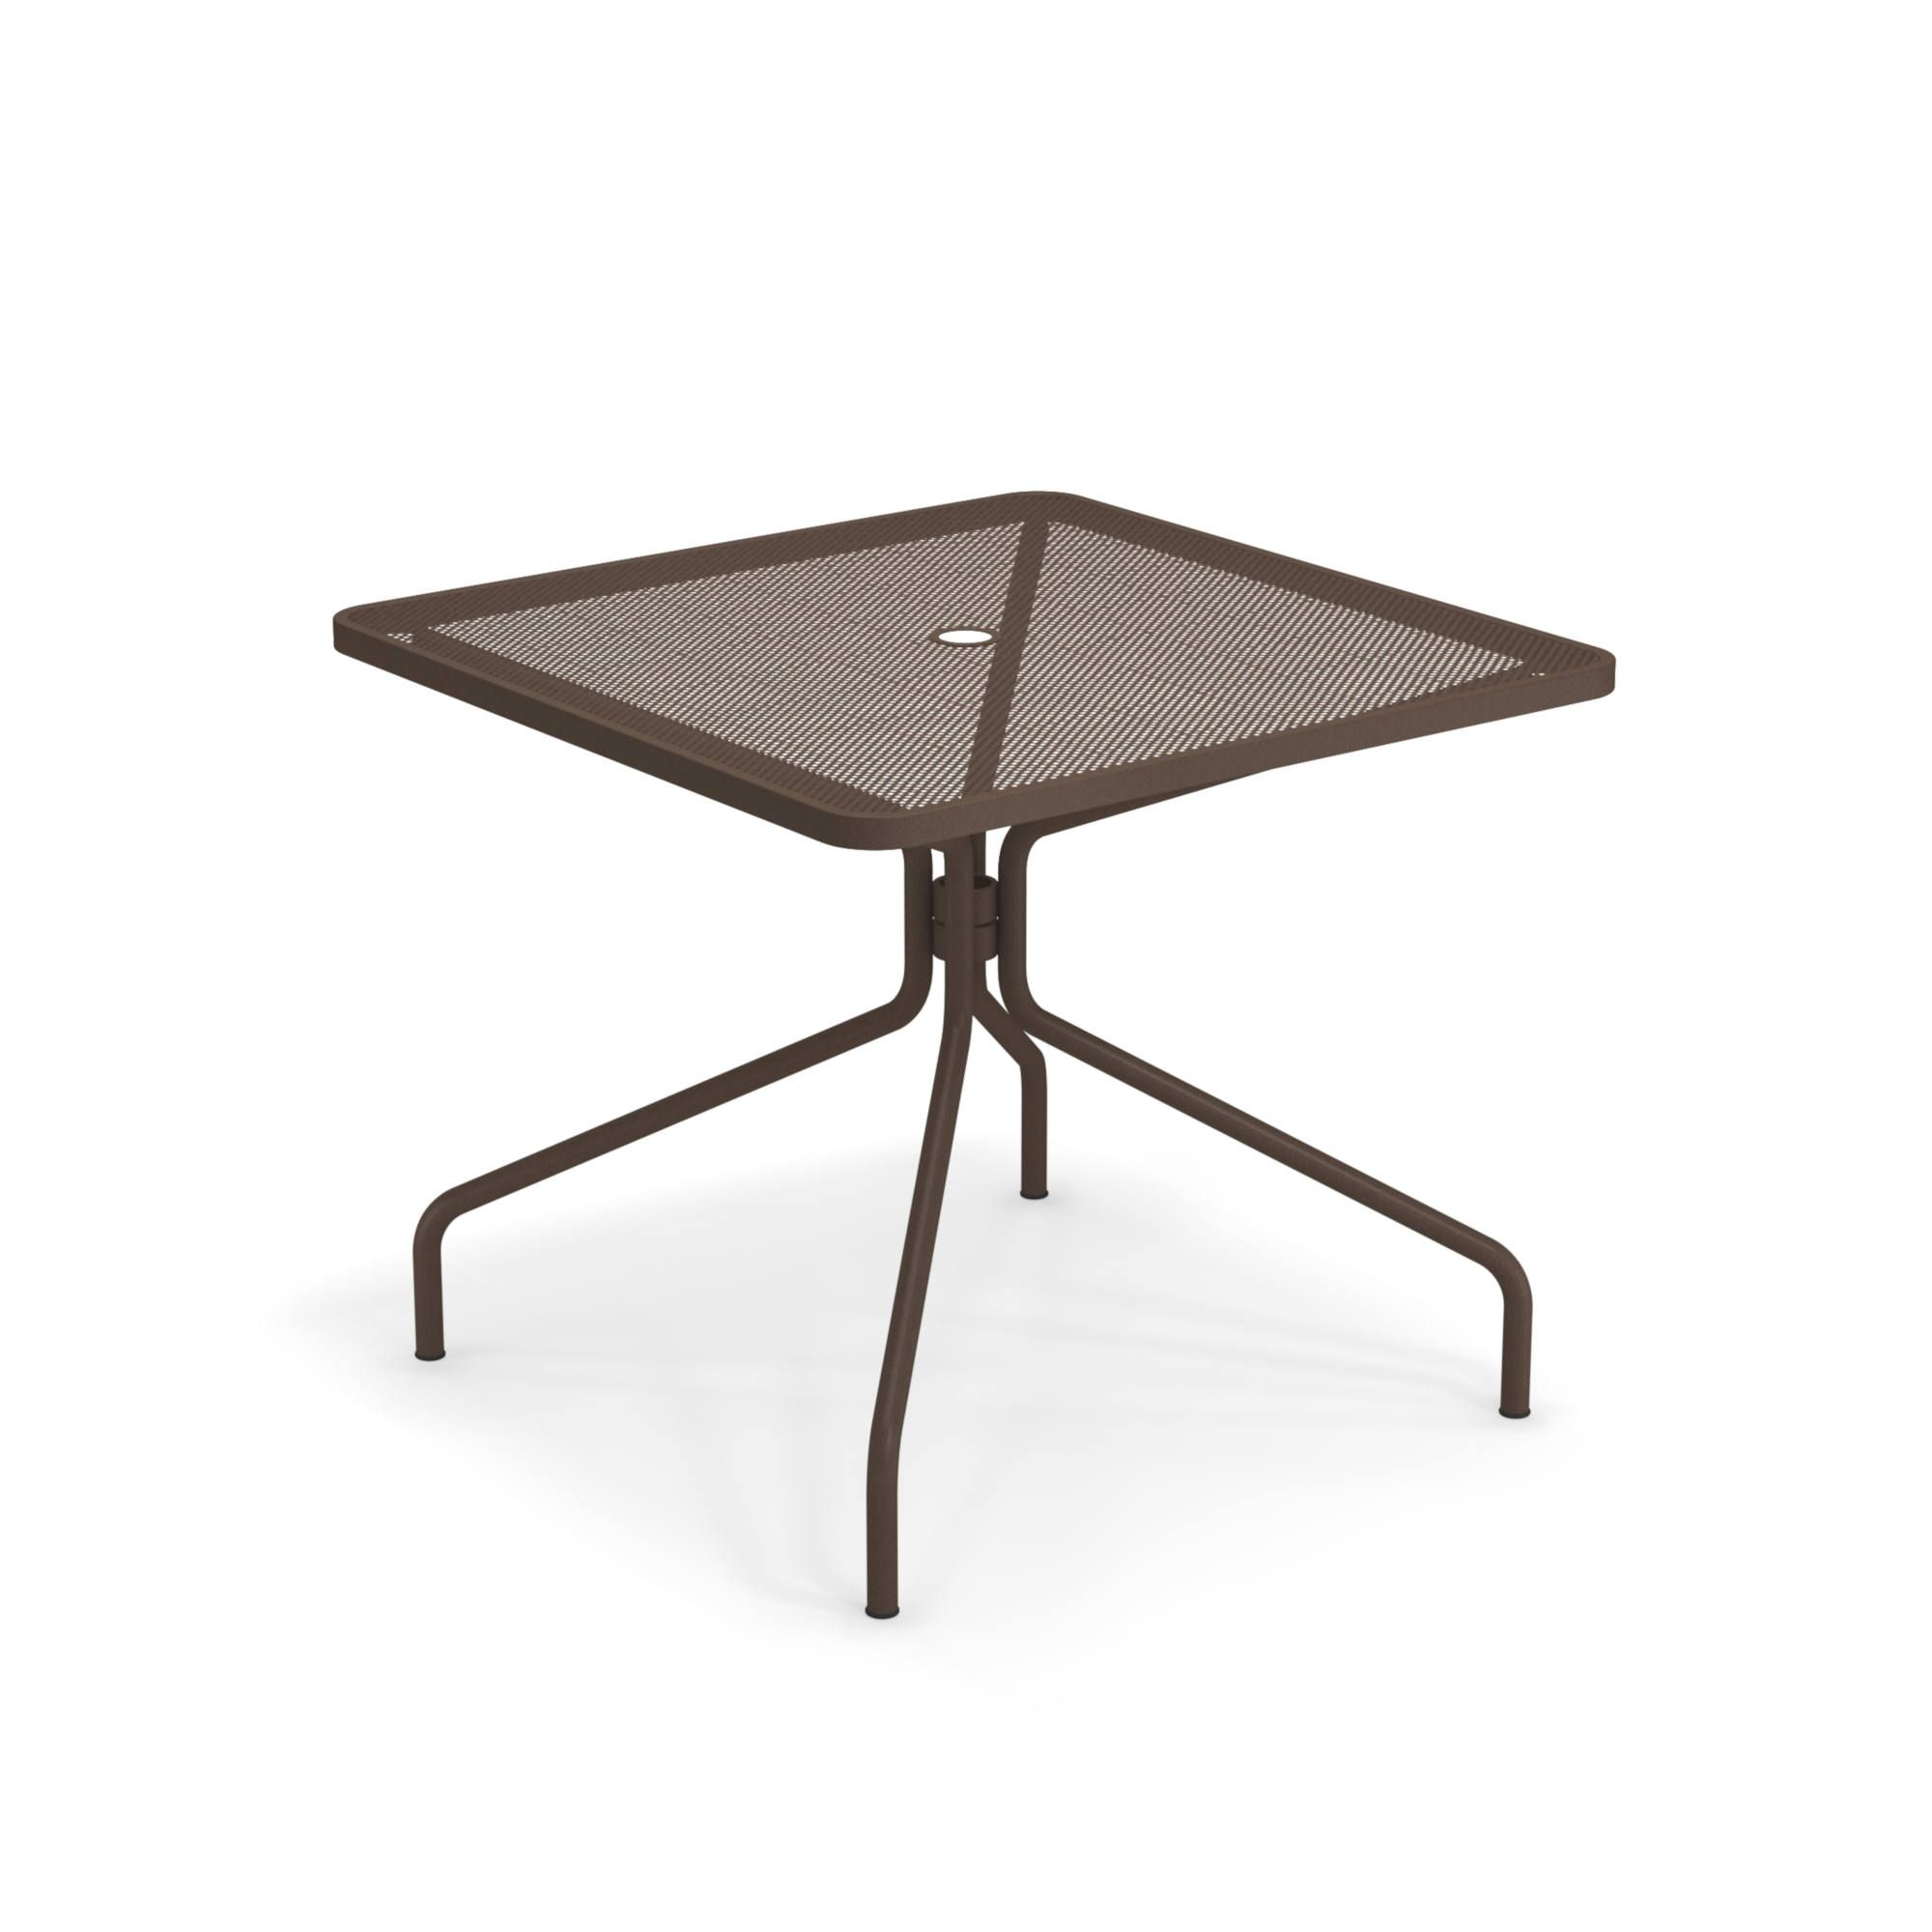 emuamericas, llc 802-41 table, outdoor